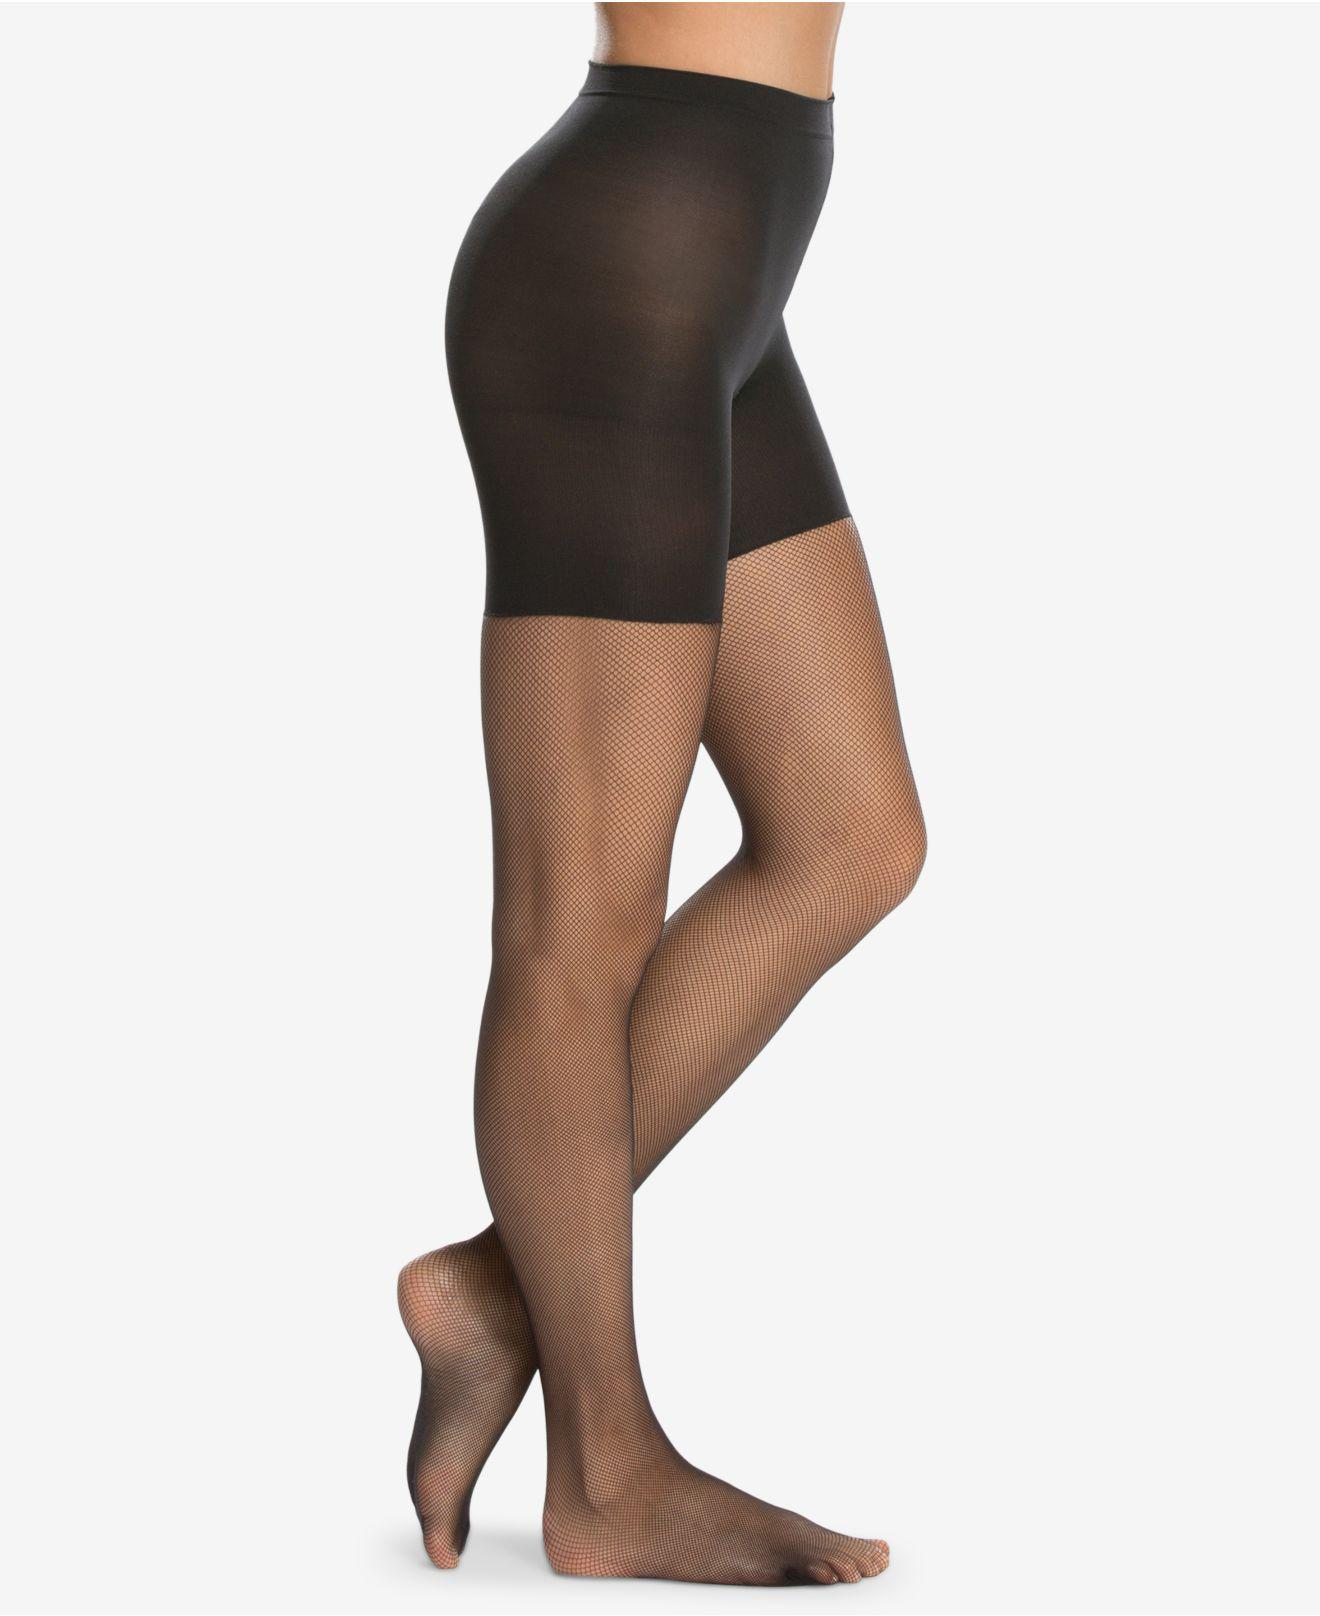 35c61b4e32 Lyst - Spanx ® Micro-fishnet Mid-thigh Shaping Tights in Black